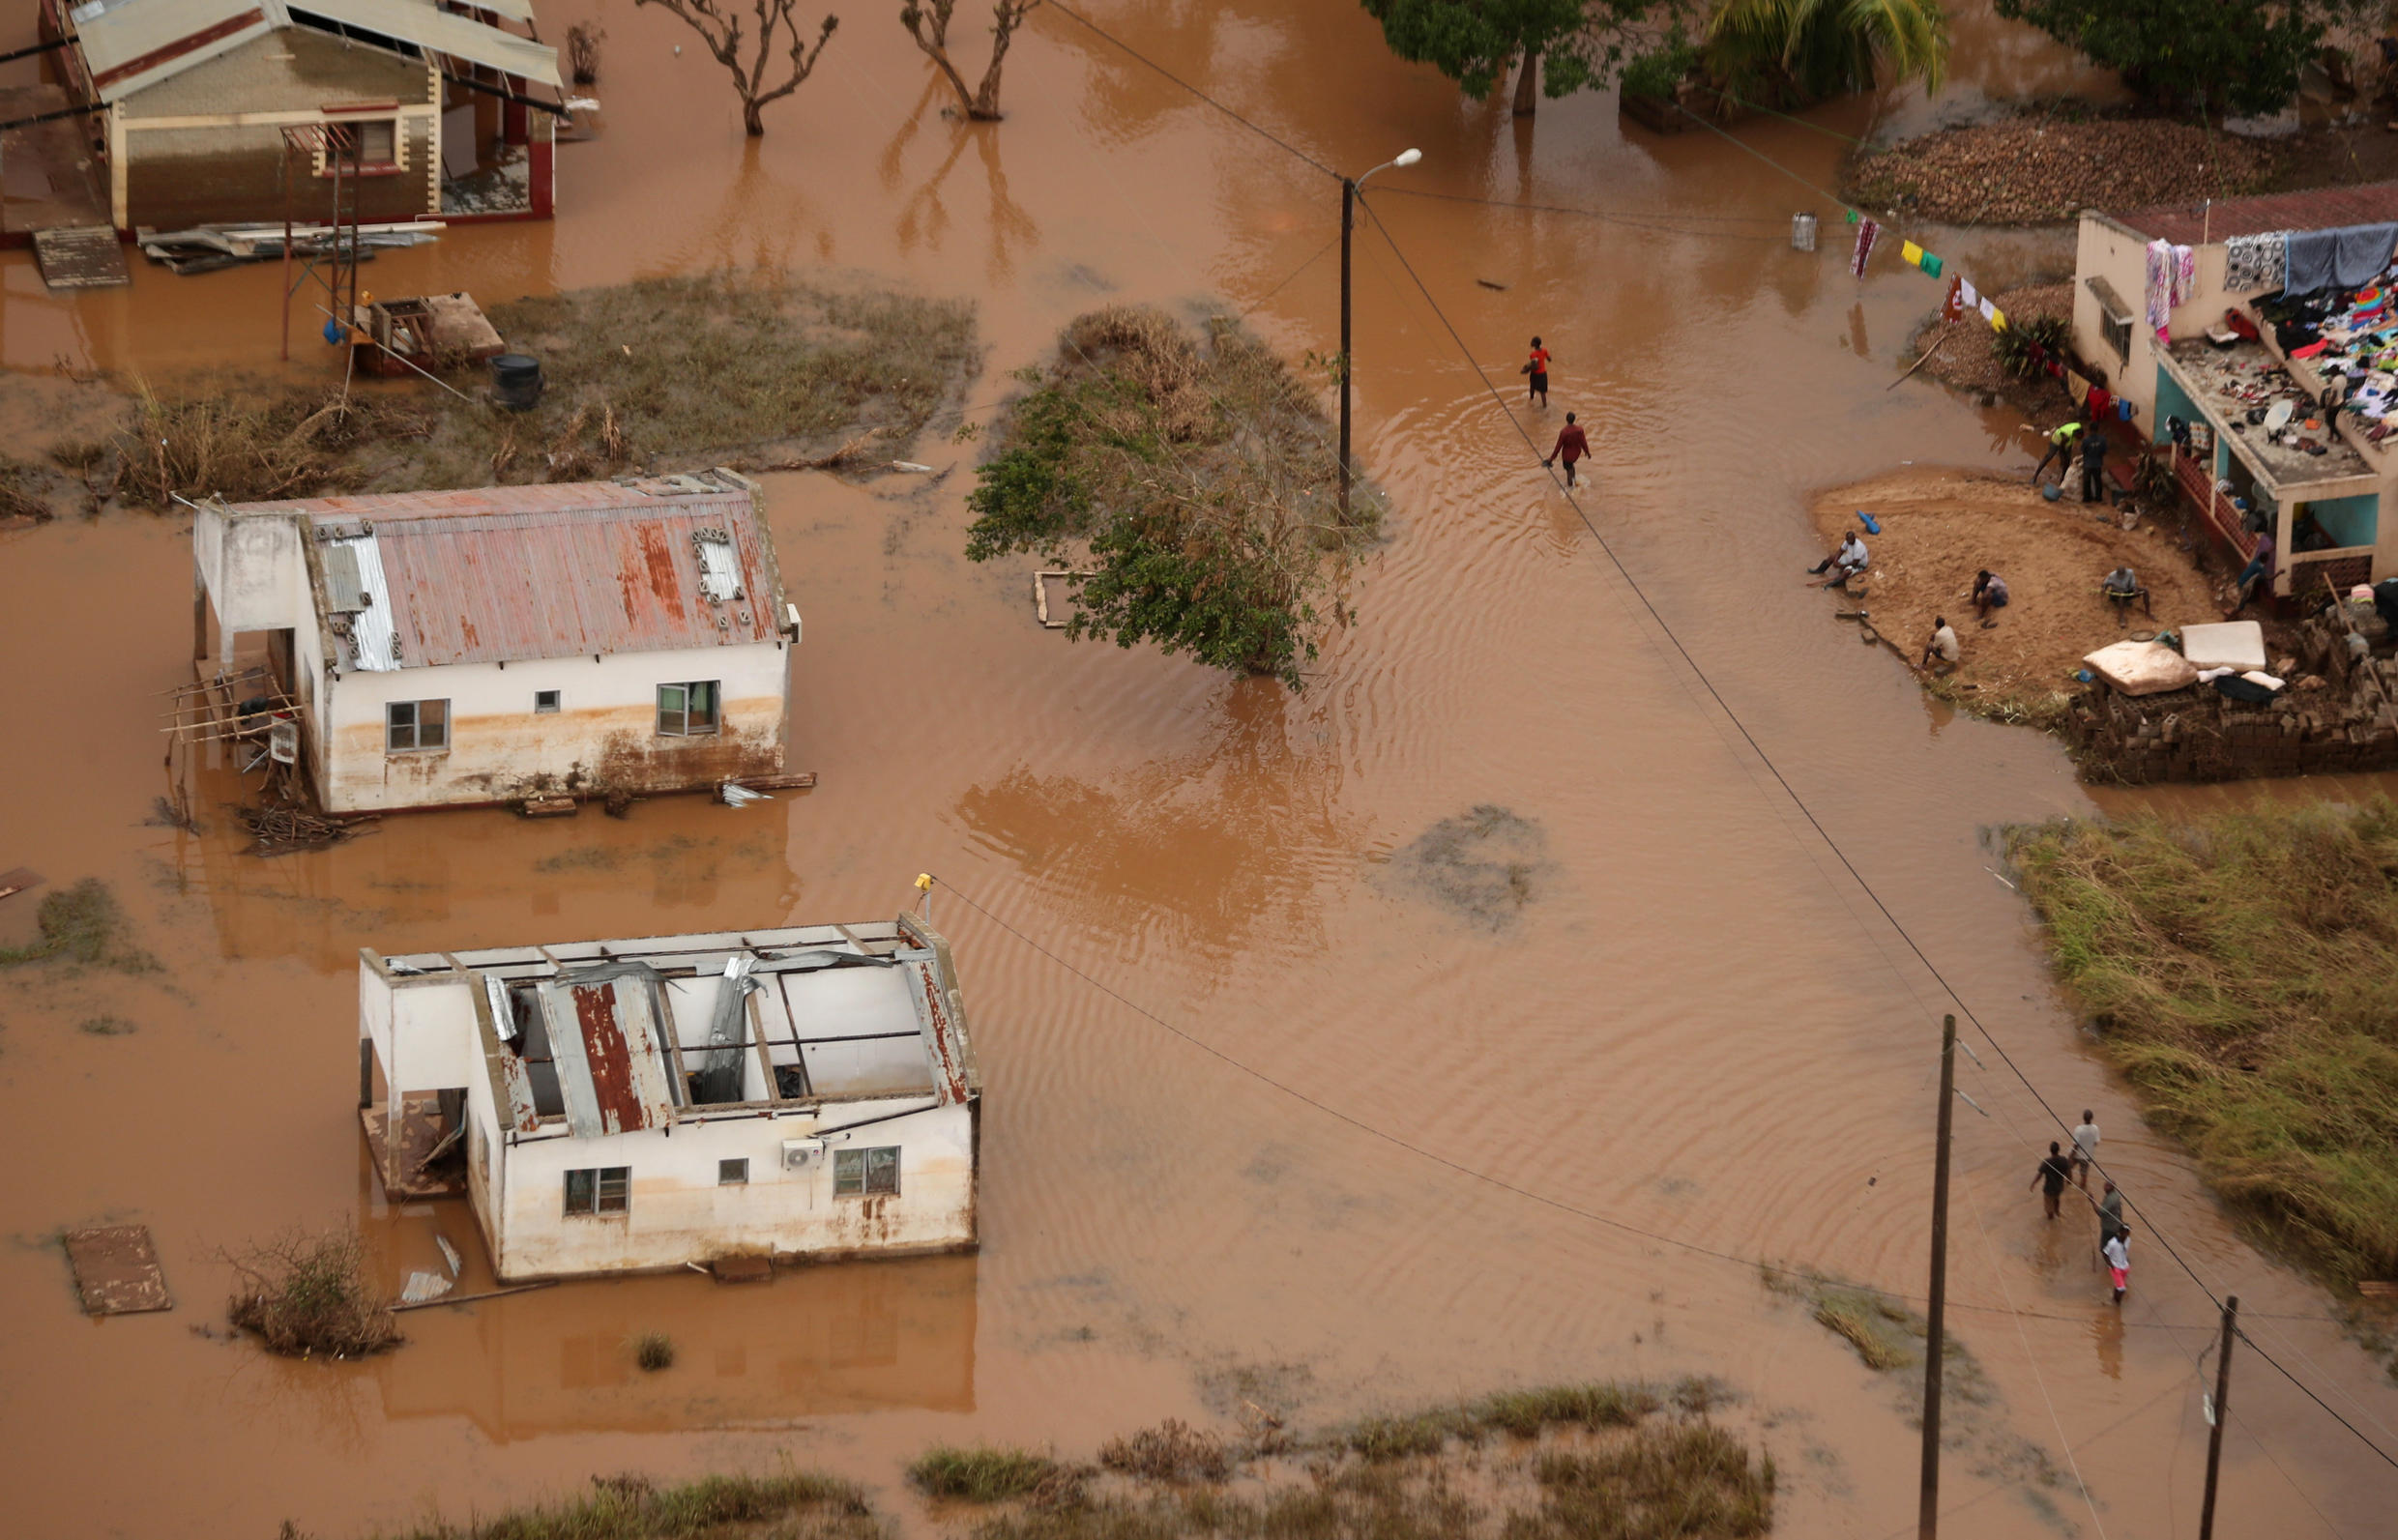 Cyclone Idai hit Mozambique eight days ago. The death toll in the country has risen to 417 but thousands more missing.